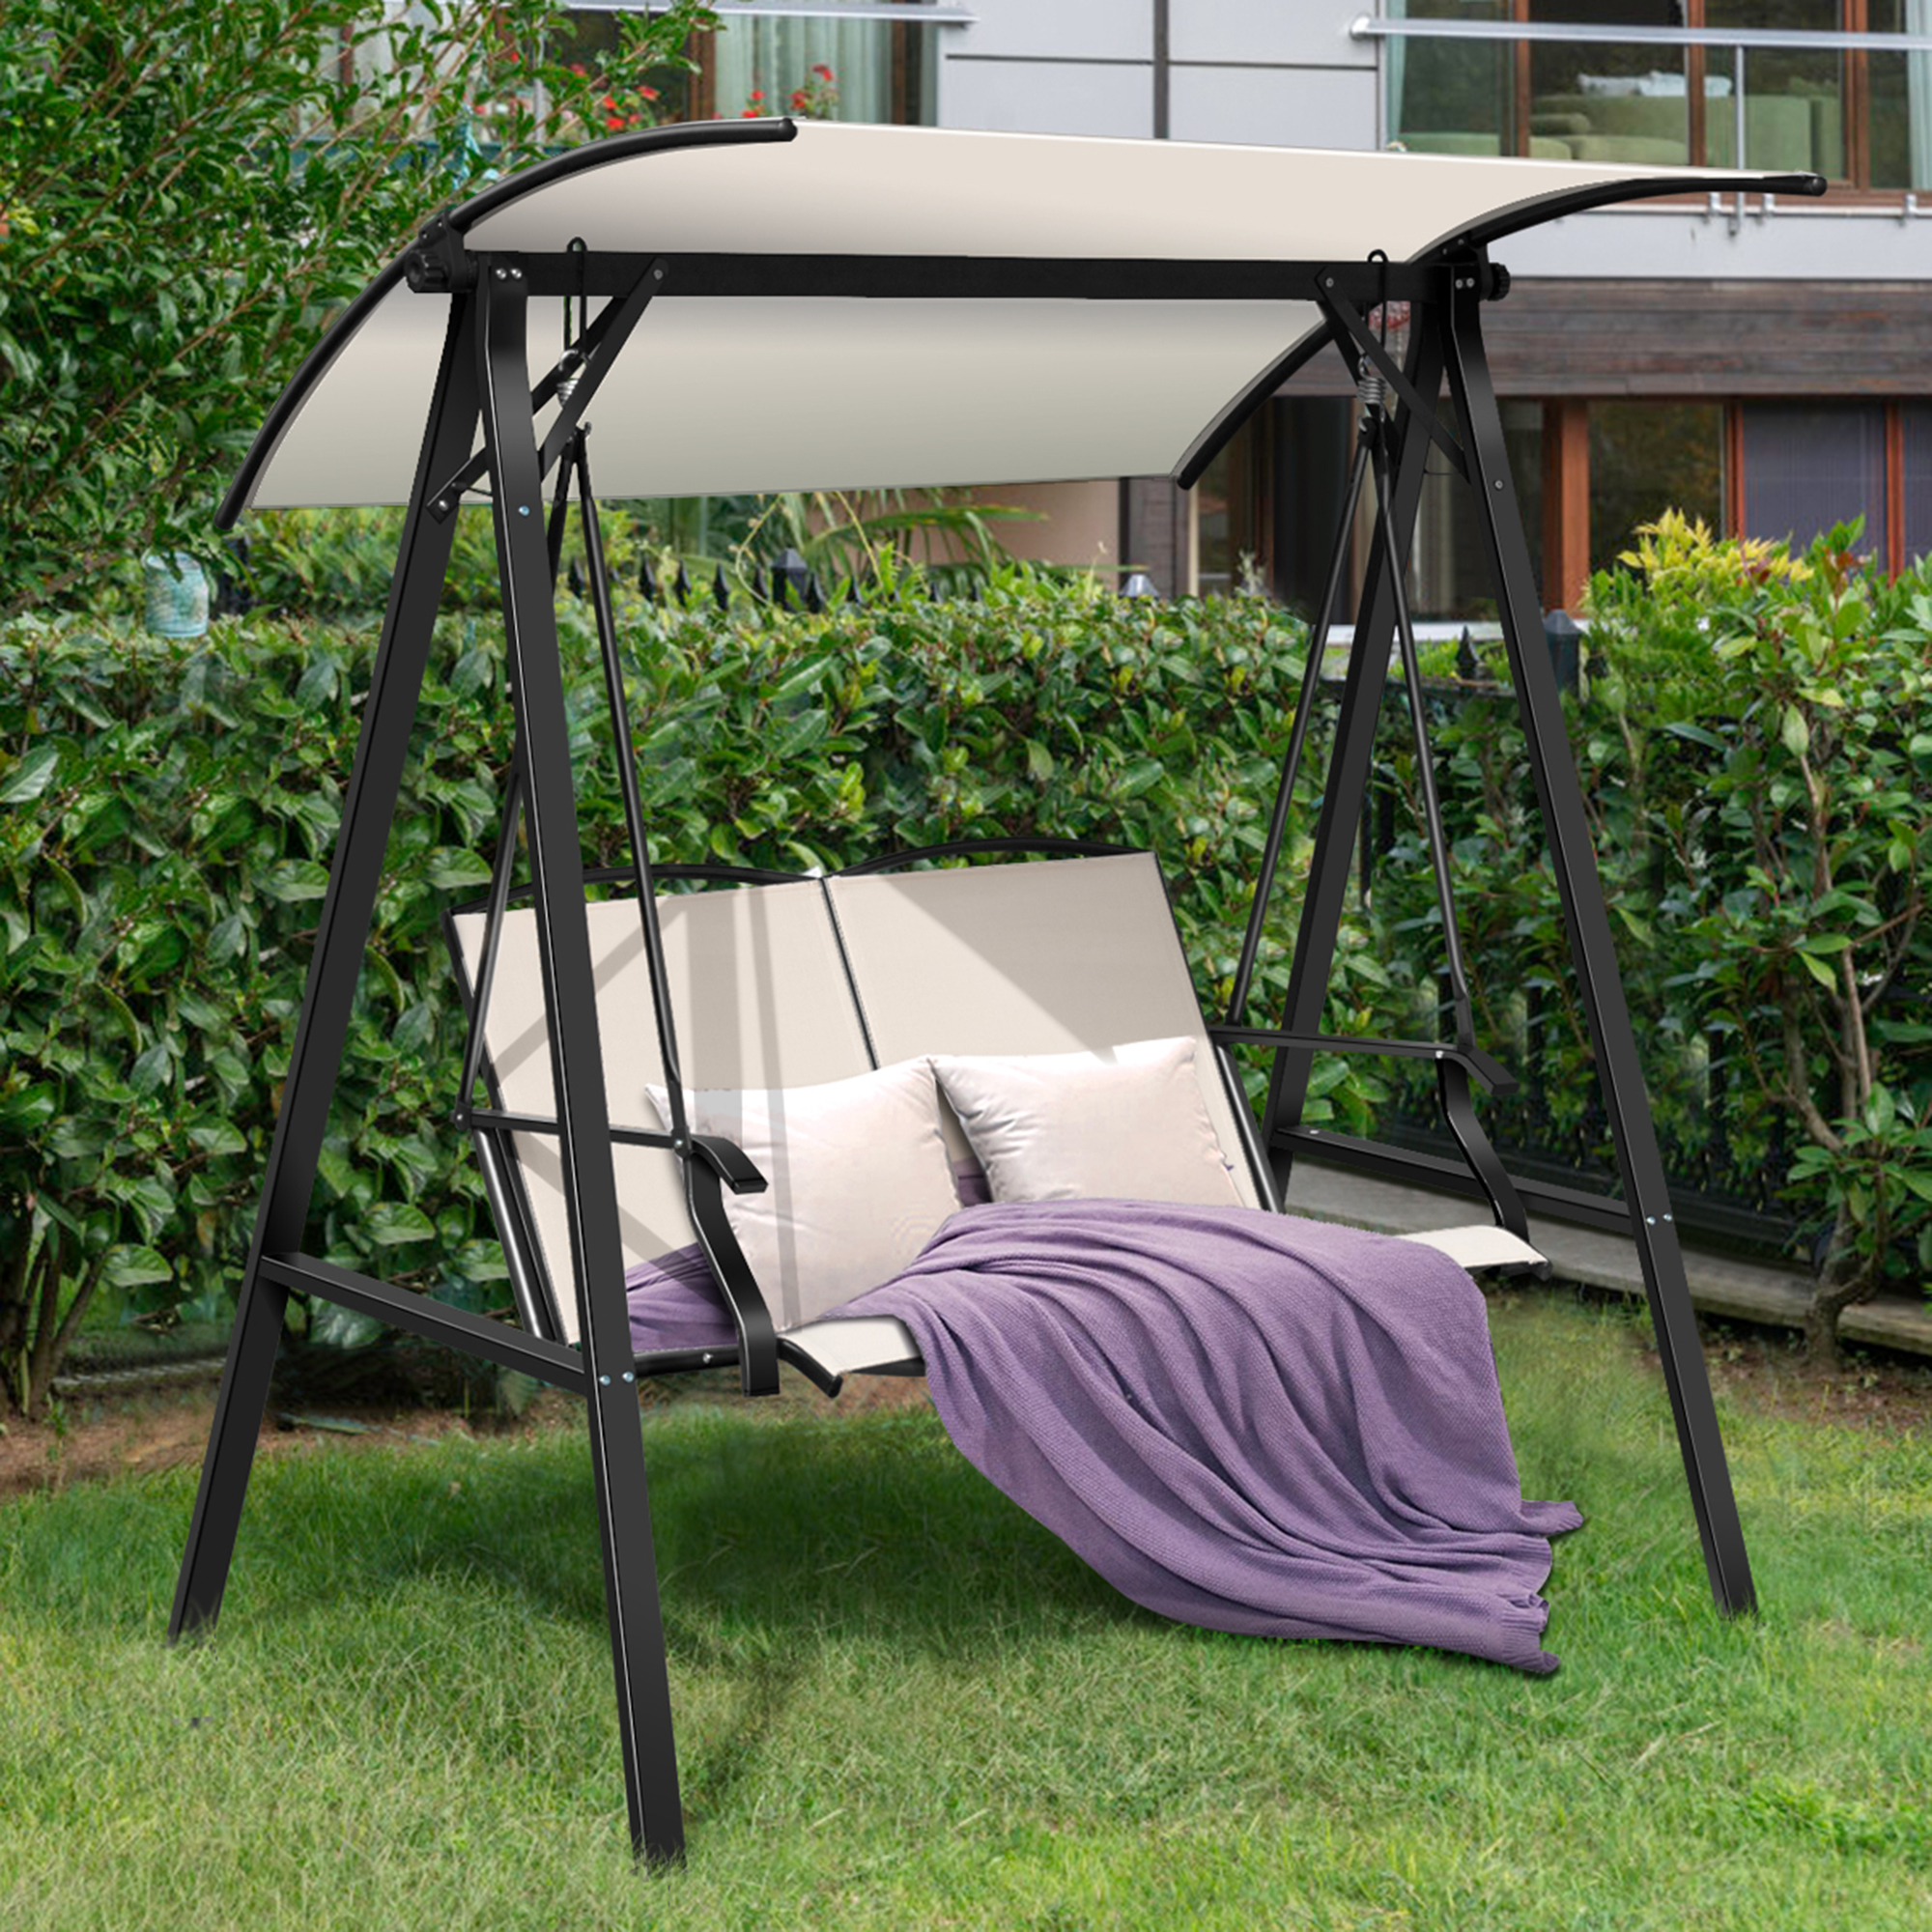 gymax patio canopy swing outdoor swing chair 2 person canopy hammock beige